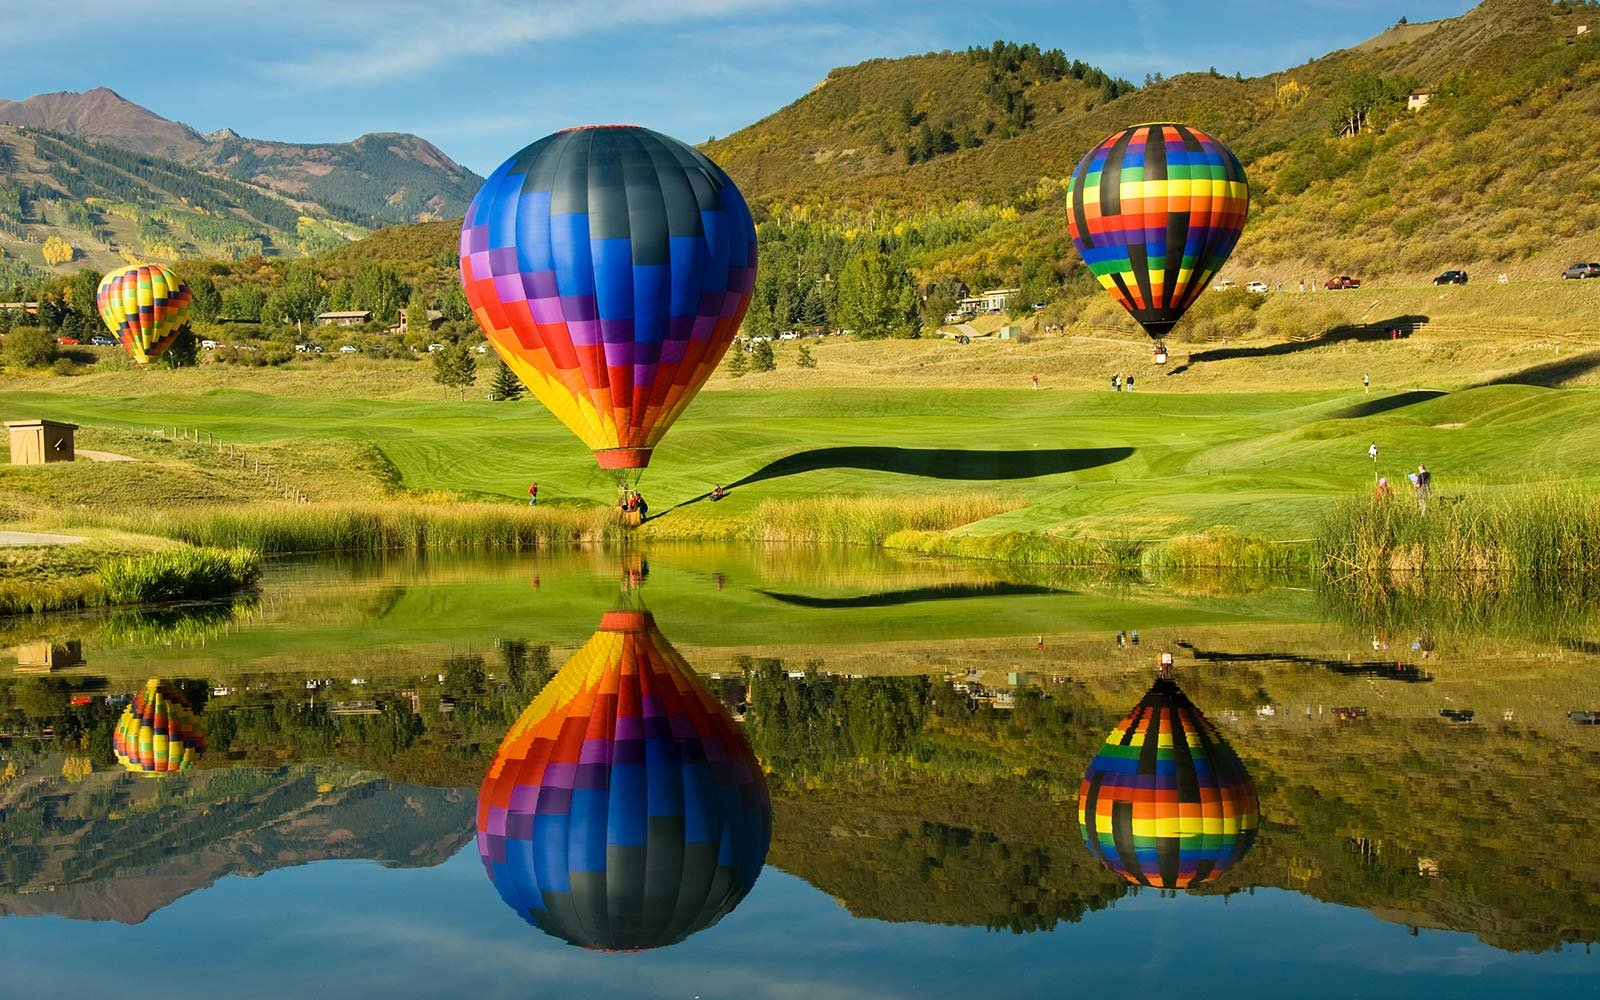 balloon festival in Aspen Colorado snowmass